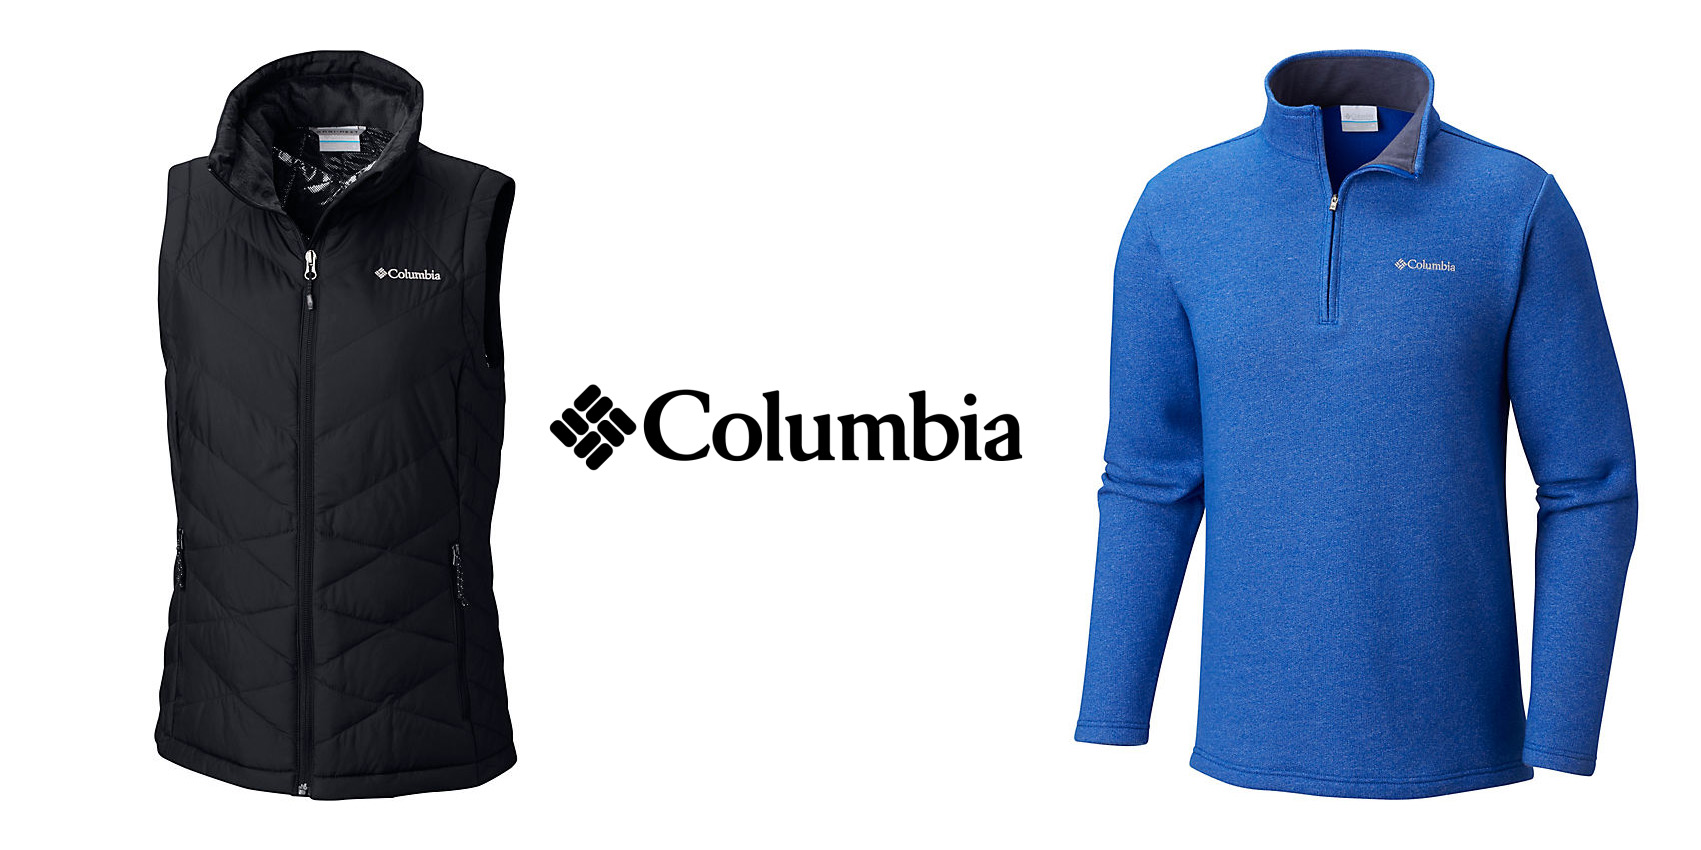 Columbia takes up to 65% off its Web Specials with deals from $16 on jackets, pullovers, more